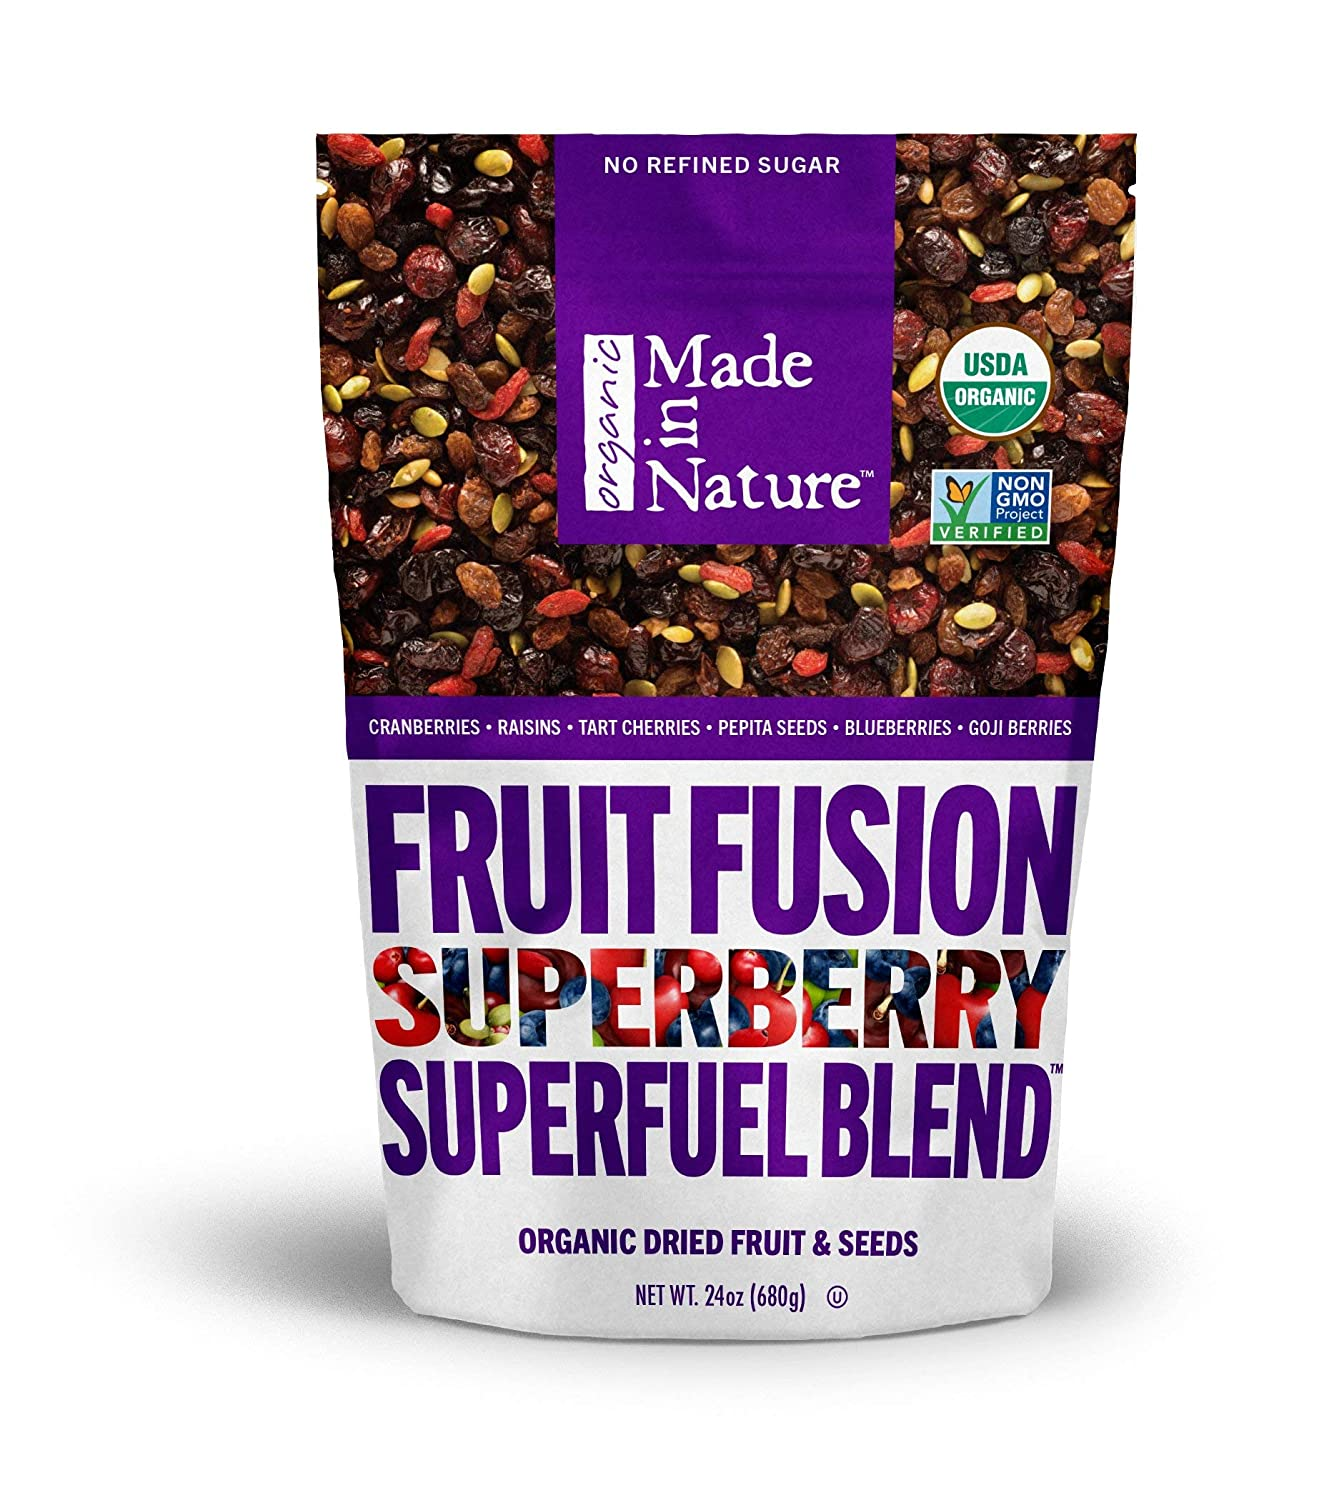 Made in Nature Superberry Fruit Fusion, Organic Dried Fruit and Seeds Trail Mix, Vegan Snack, 24 Ounce Bag